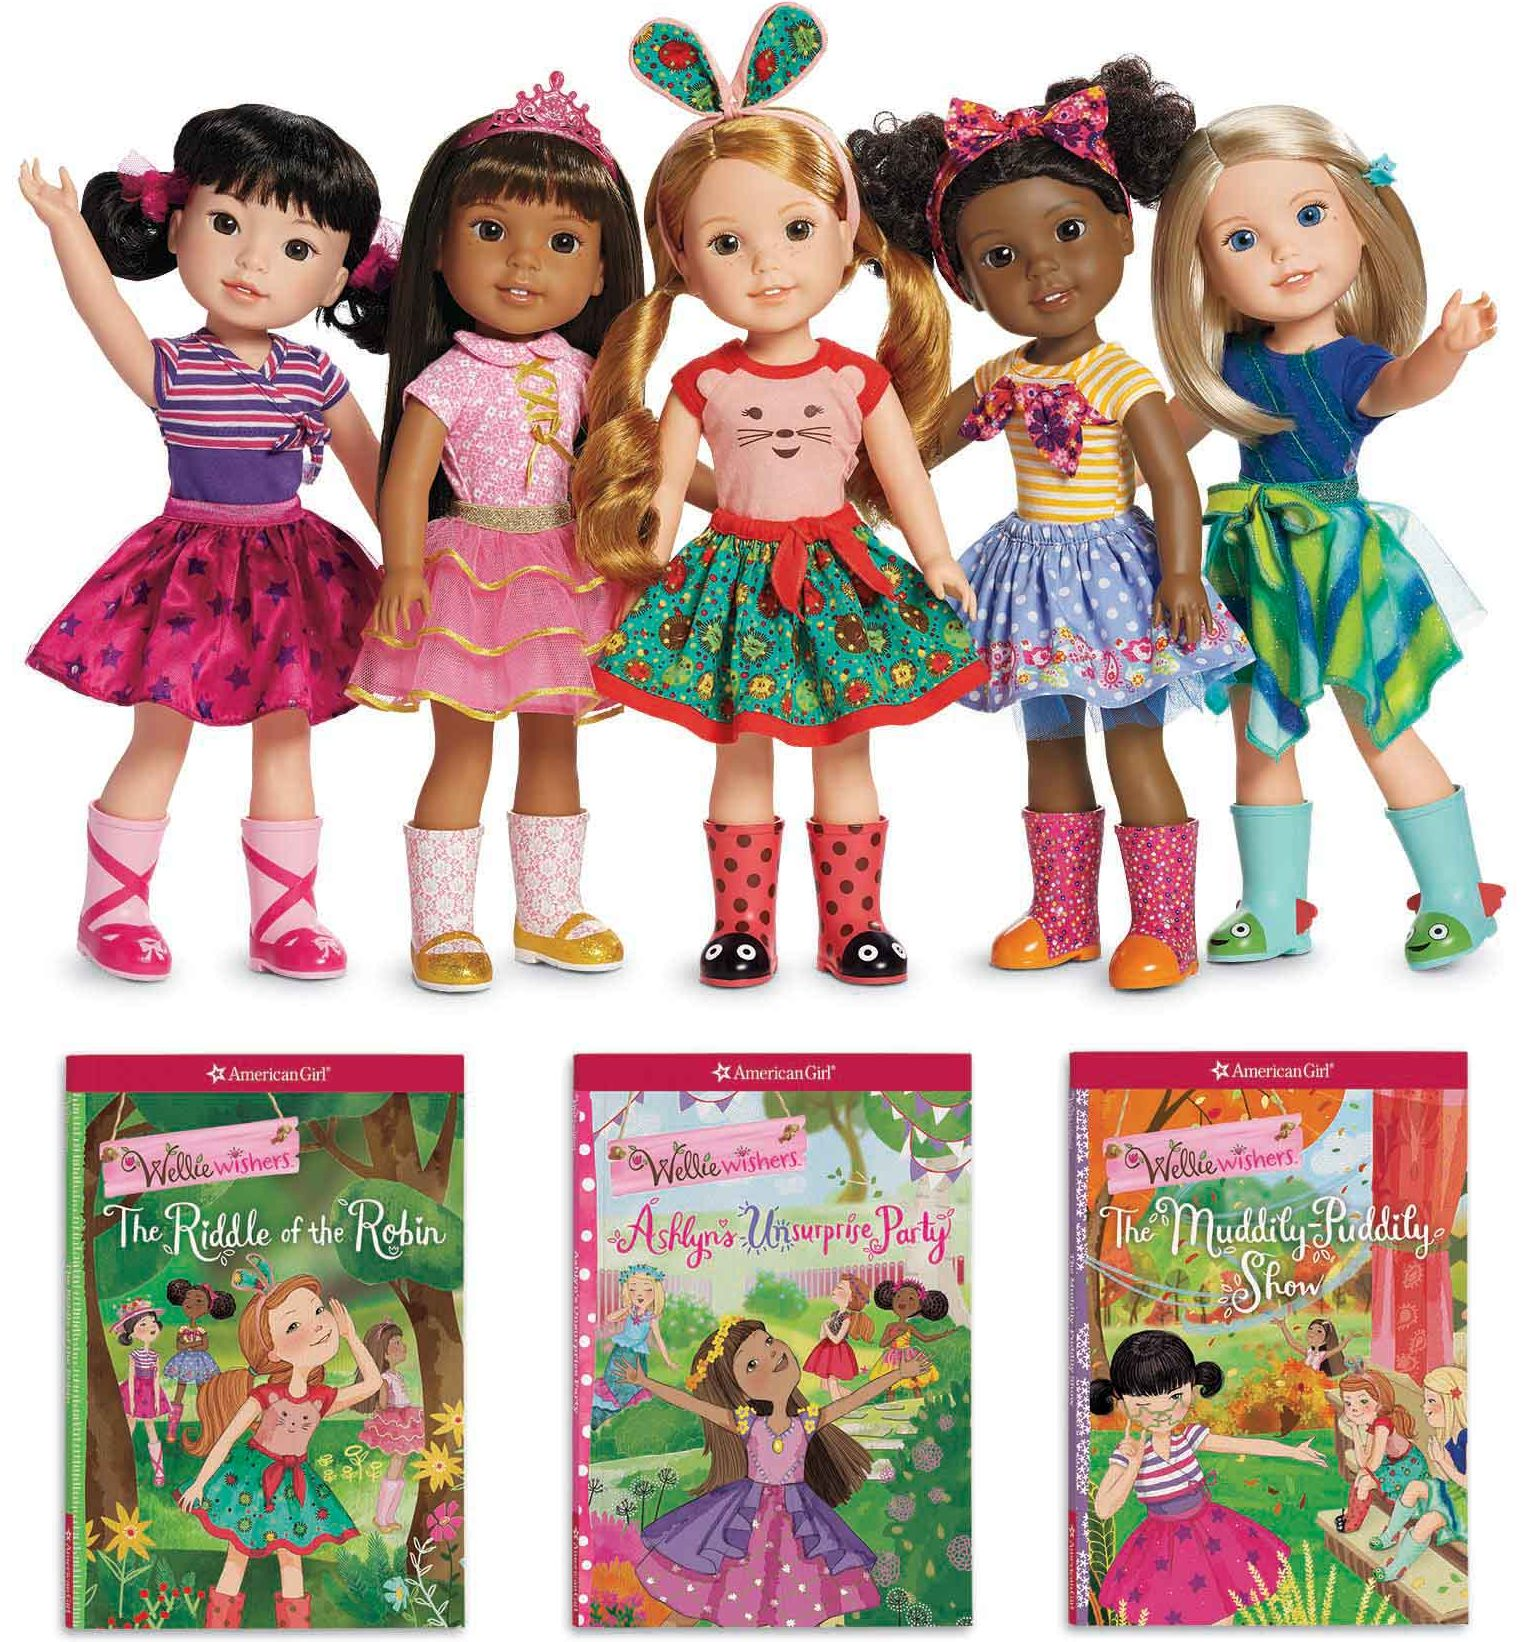 review american girl s welliewishers books and dolls are worth the